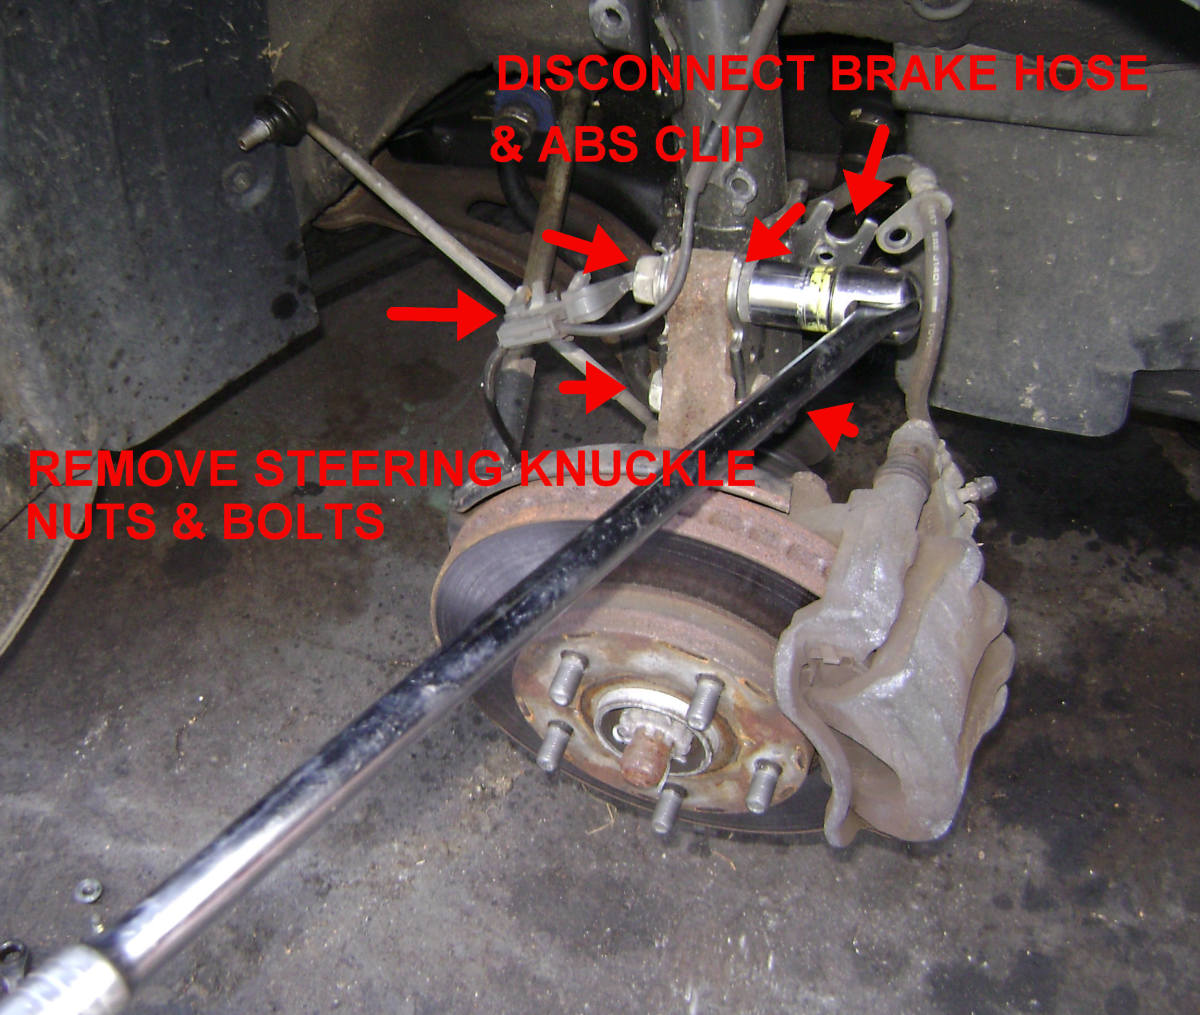 Removing the strut-to-steering knuckle bolts, brake line bolt, and ABS clip.